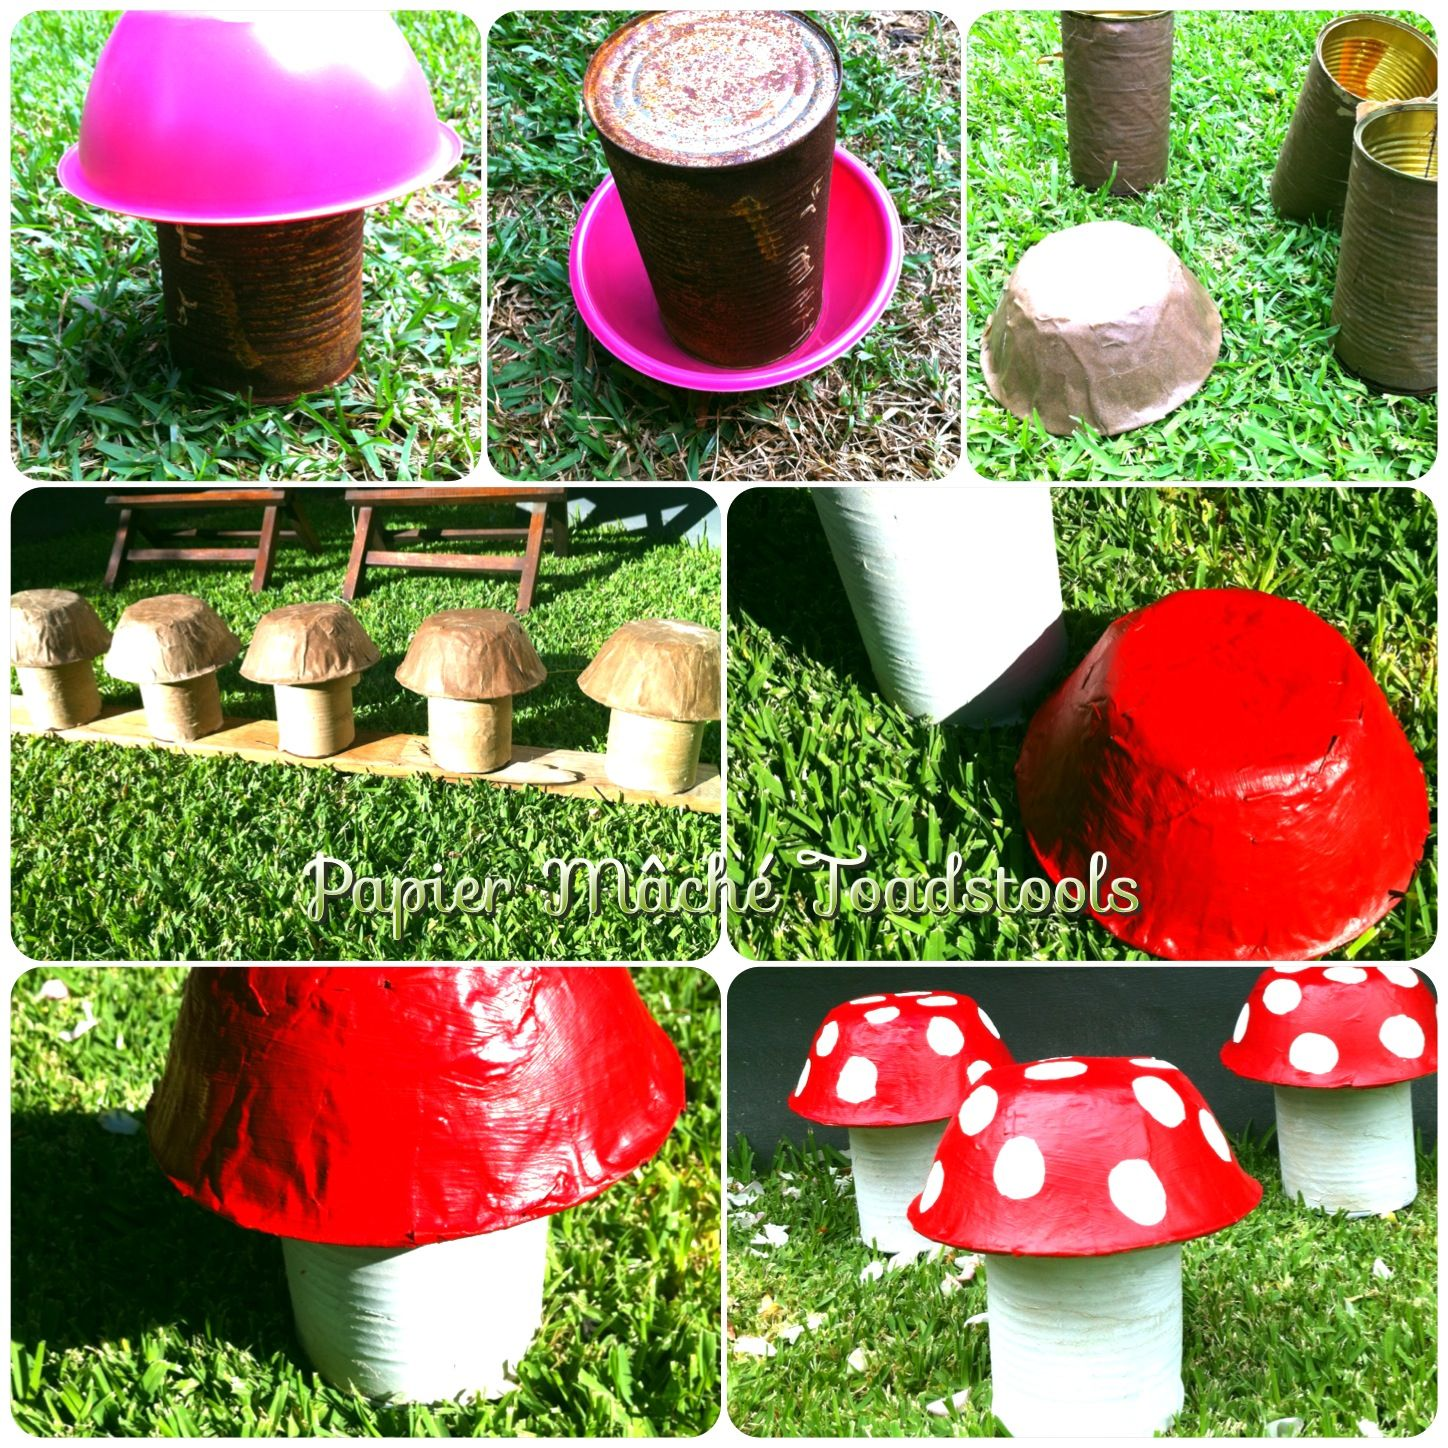 Garden Ideas For Kids To Make how to make papier mâché toadstools for children's garden party